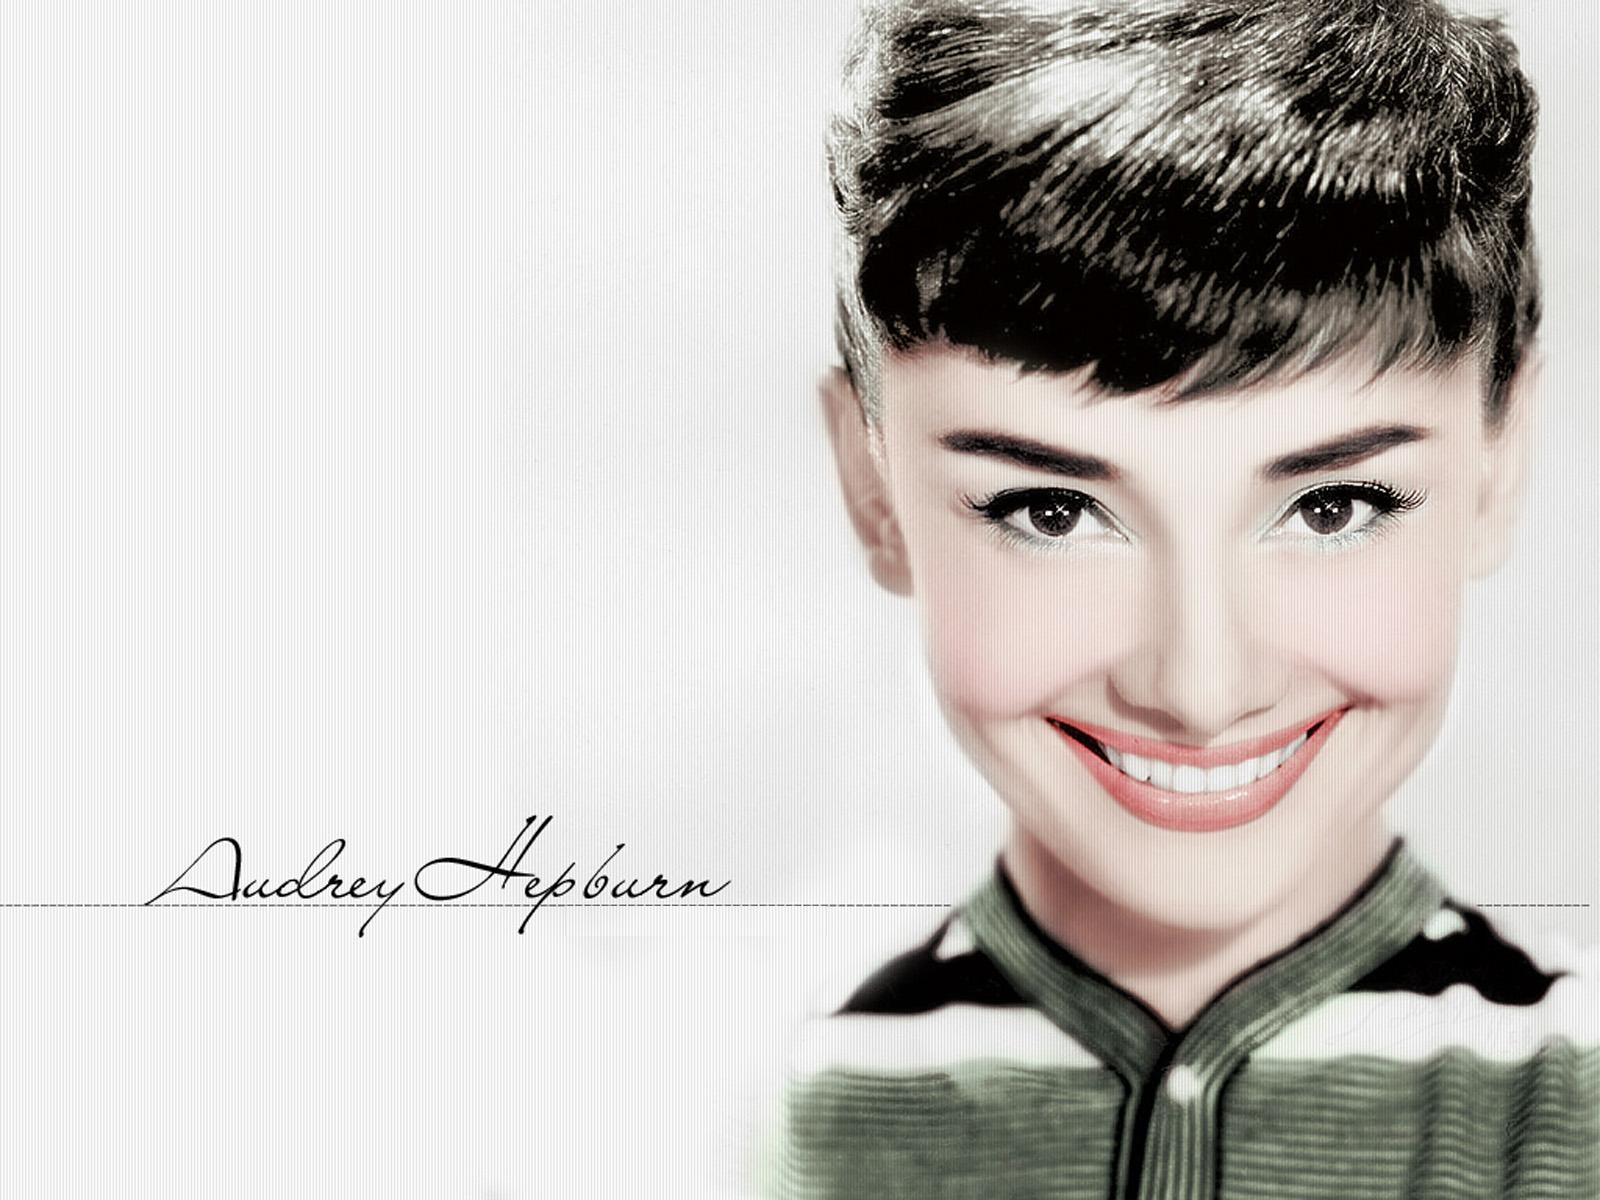 Wallpapers Photo Art Audrey Hepburn Wallpapers Audrey 1600x1200